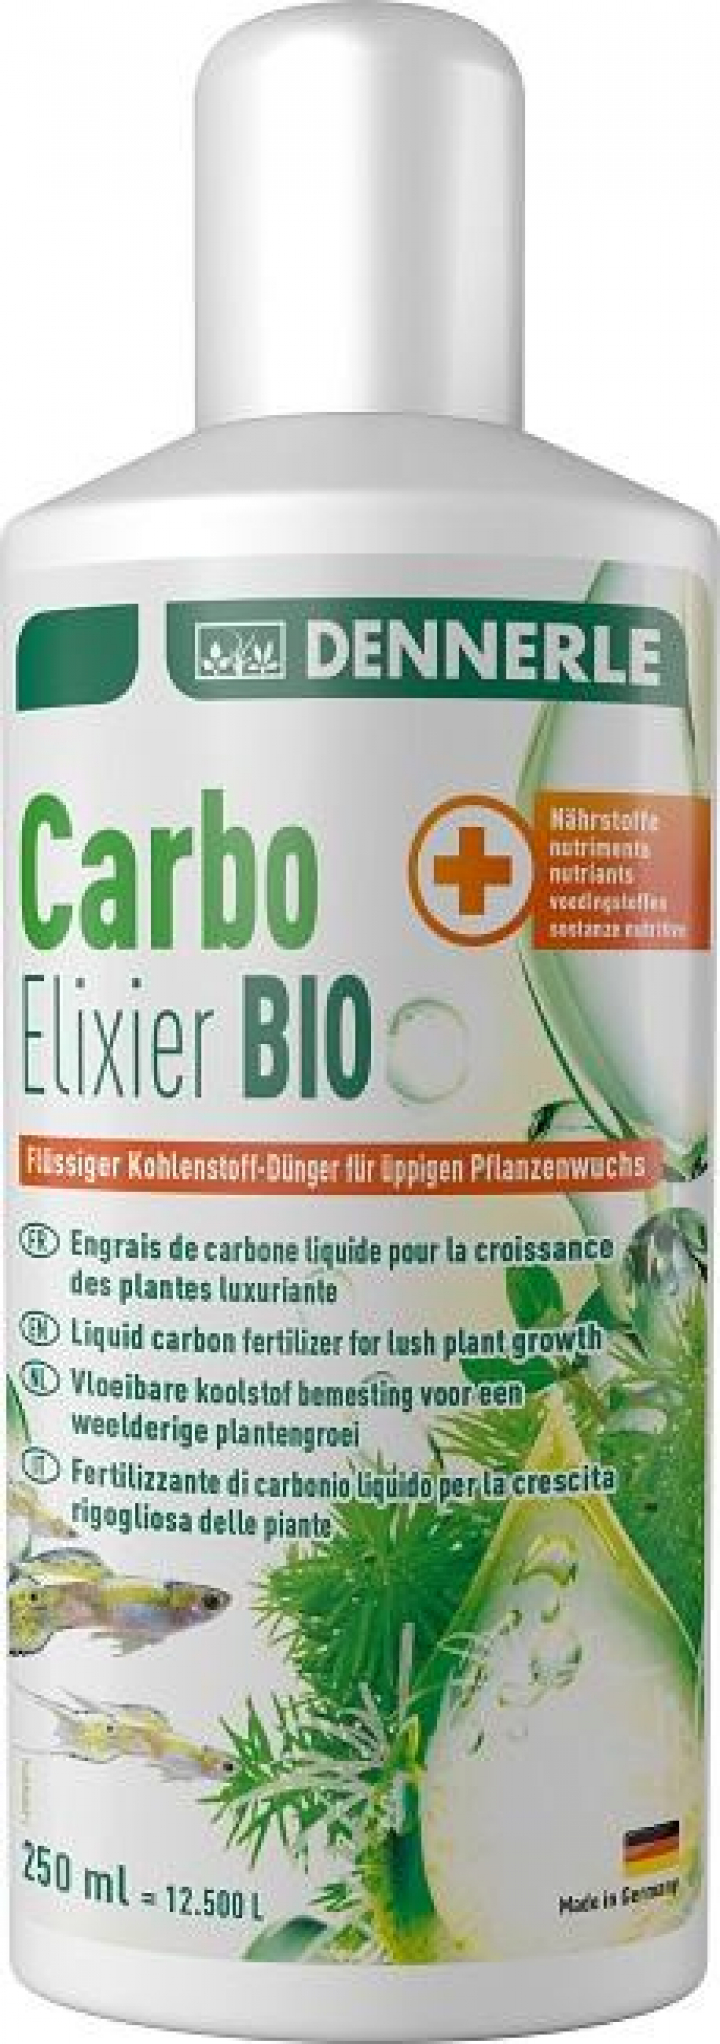 Dennerle - Carbo Elixier Bio 250ml